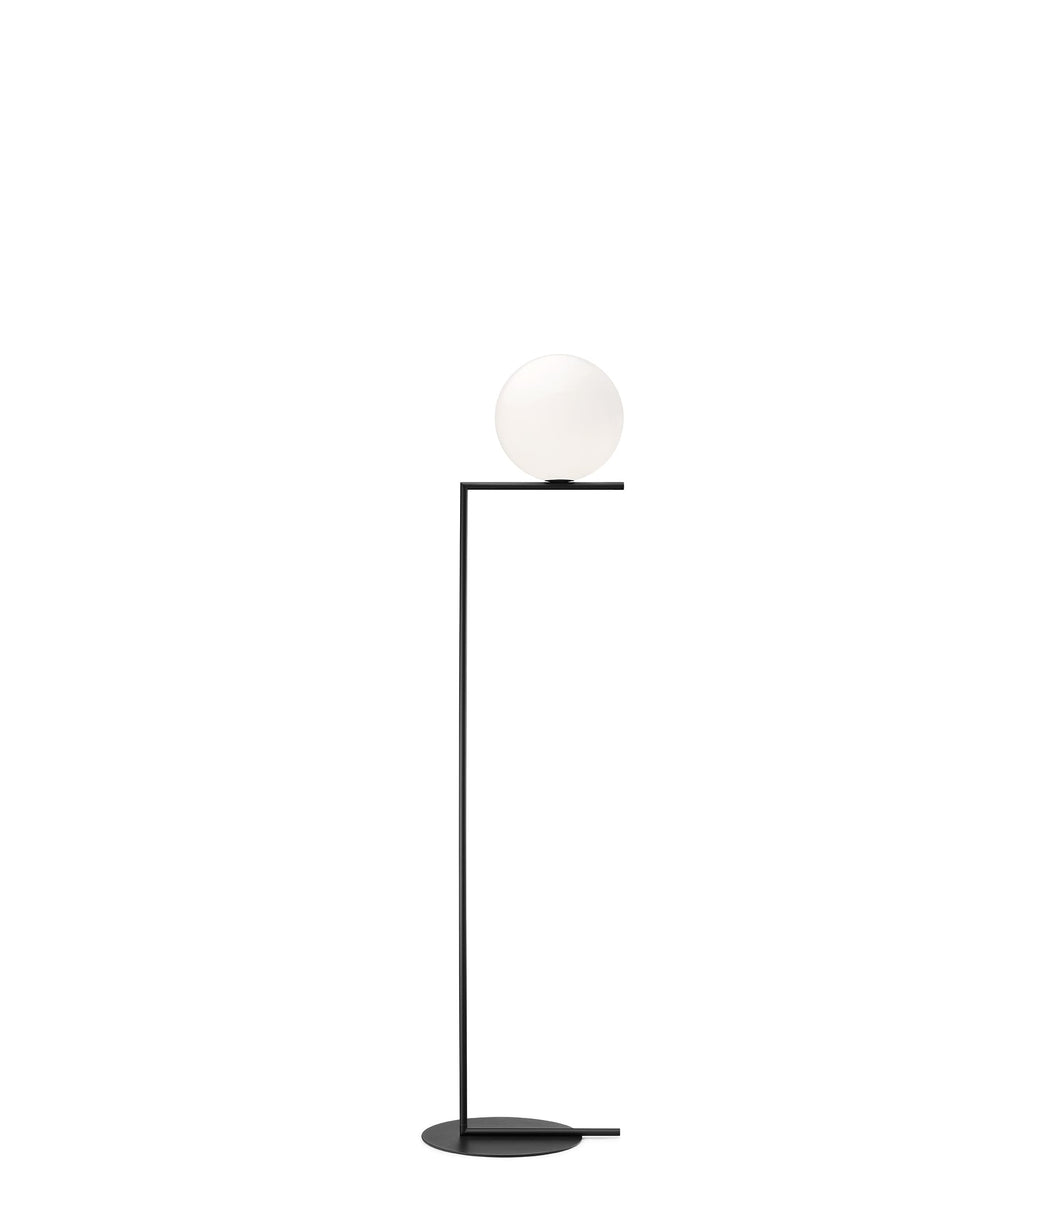 Flos IC Floor Lamp — Designed by Michael Anastassiades